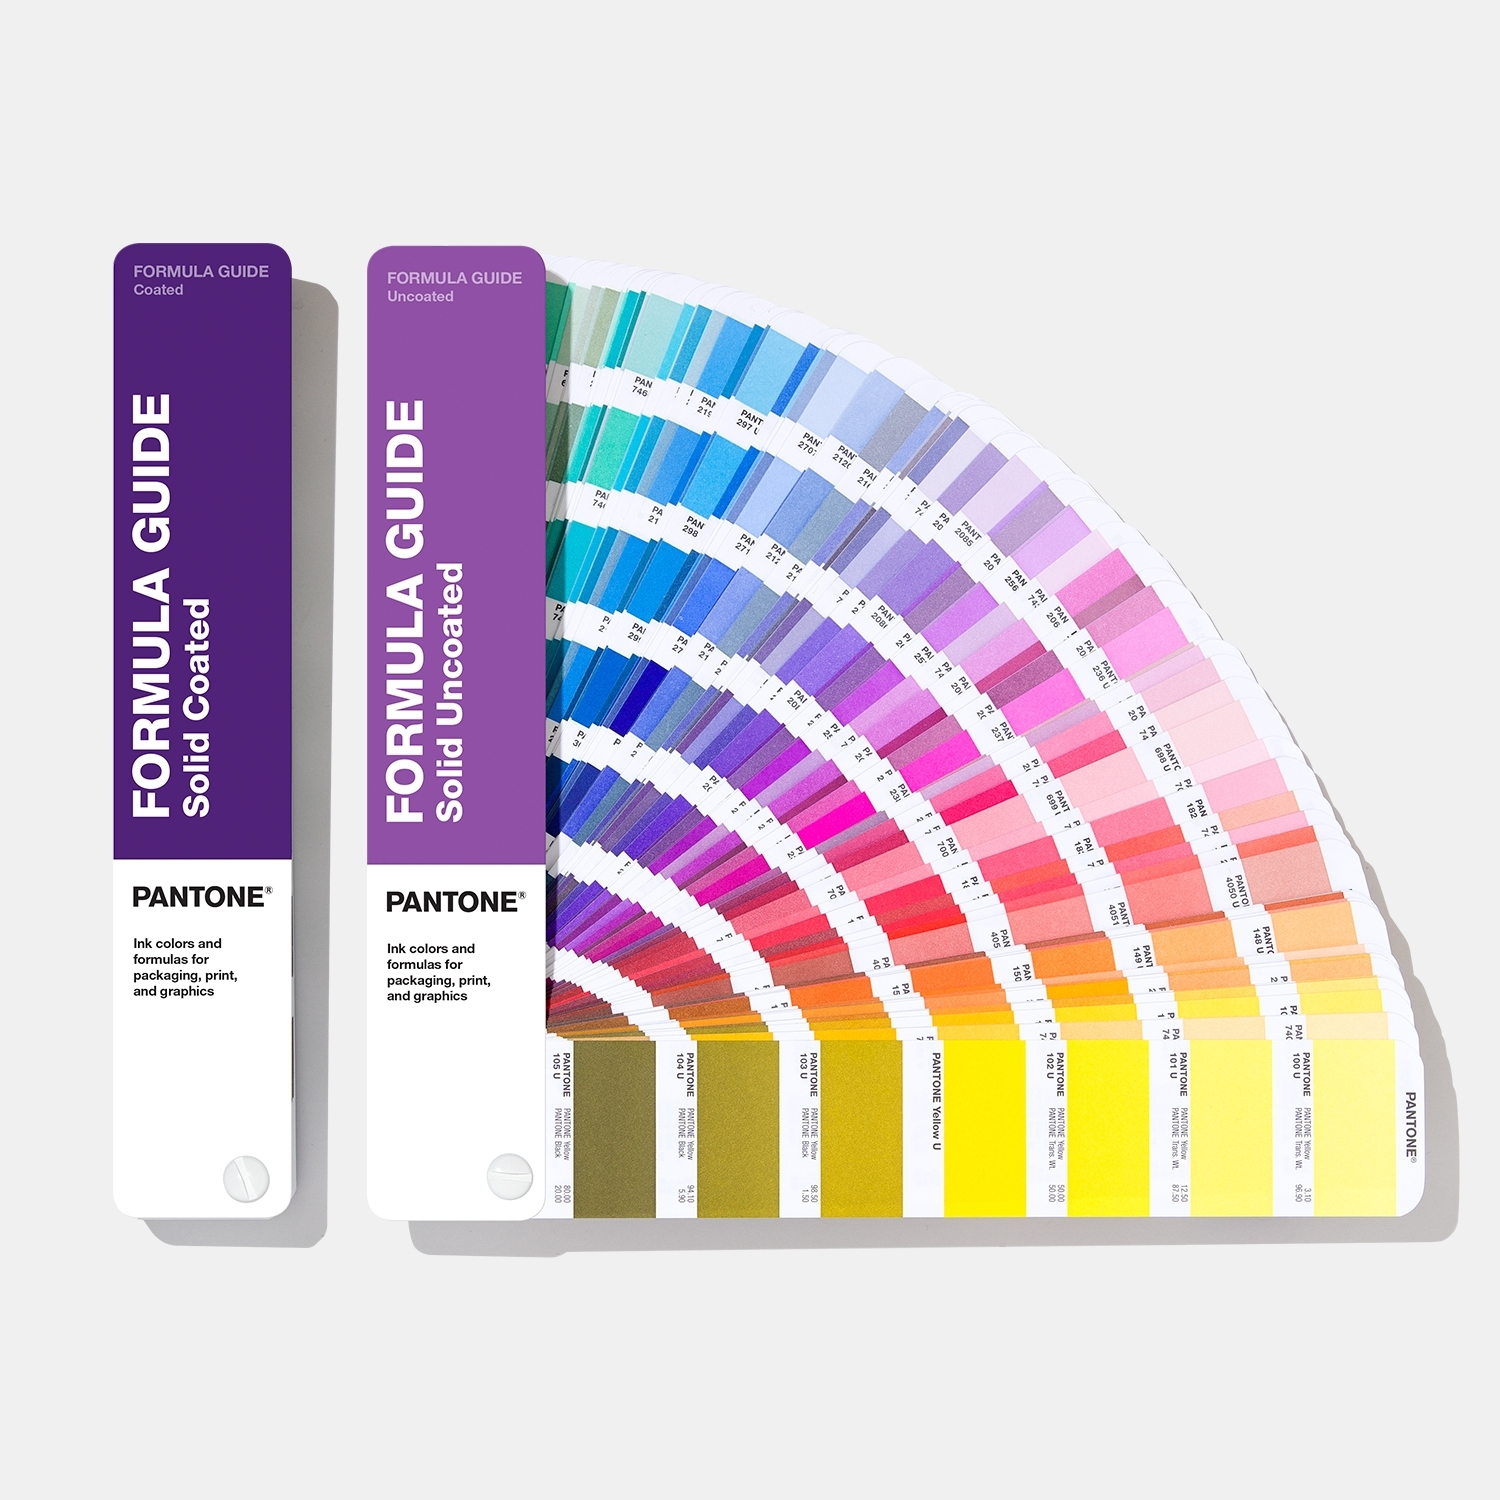 Pantone Formula Guide | Coated & Uncoated Visualize and communicate color for graphics and print - View 4